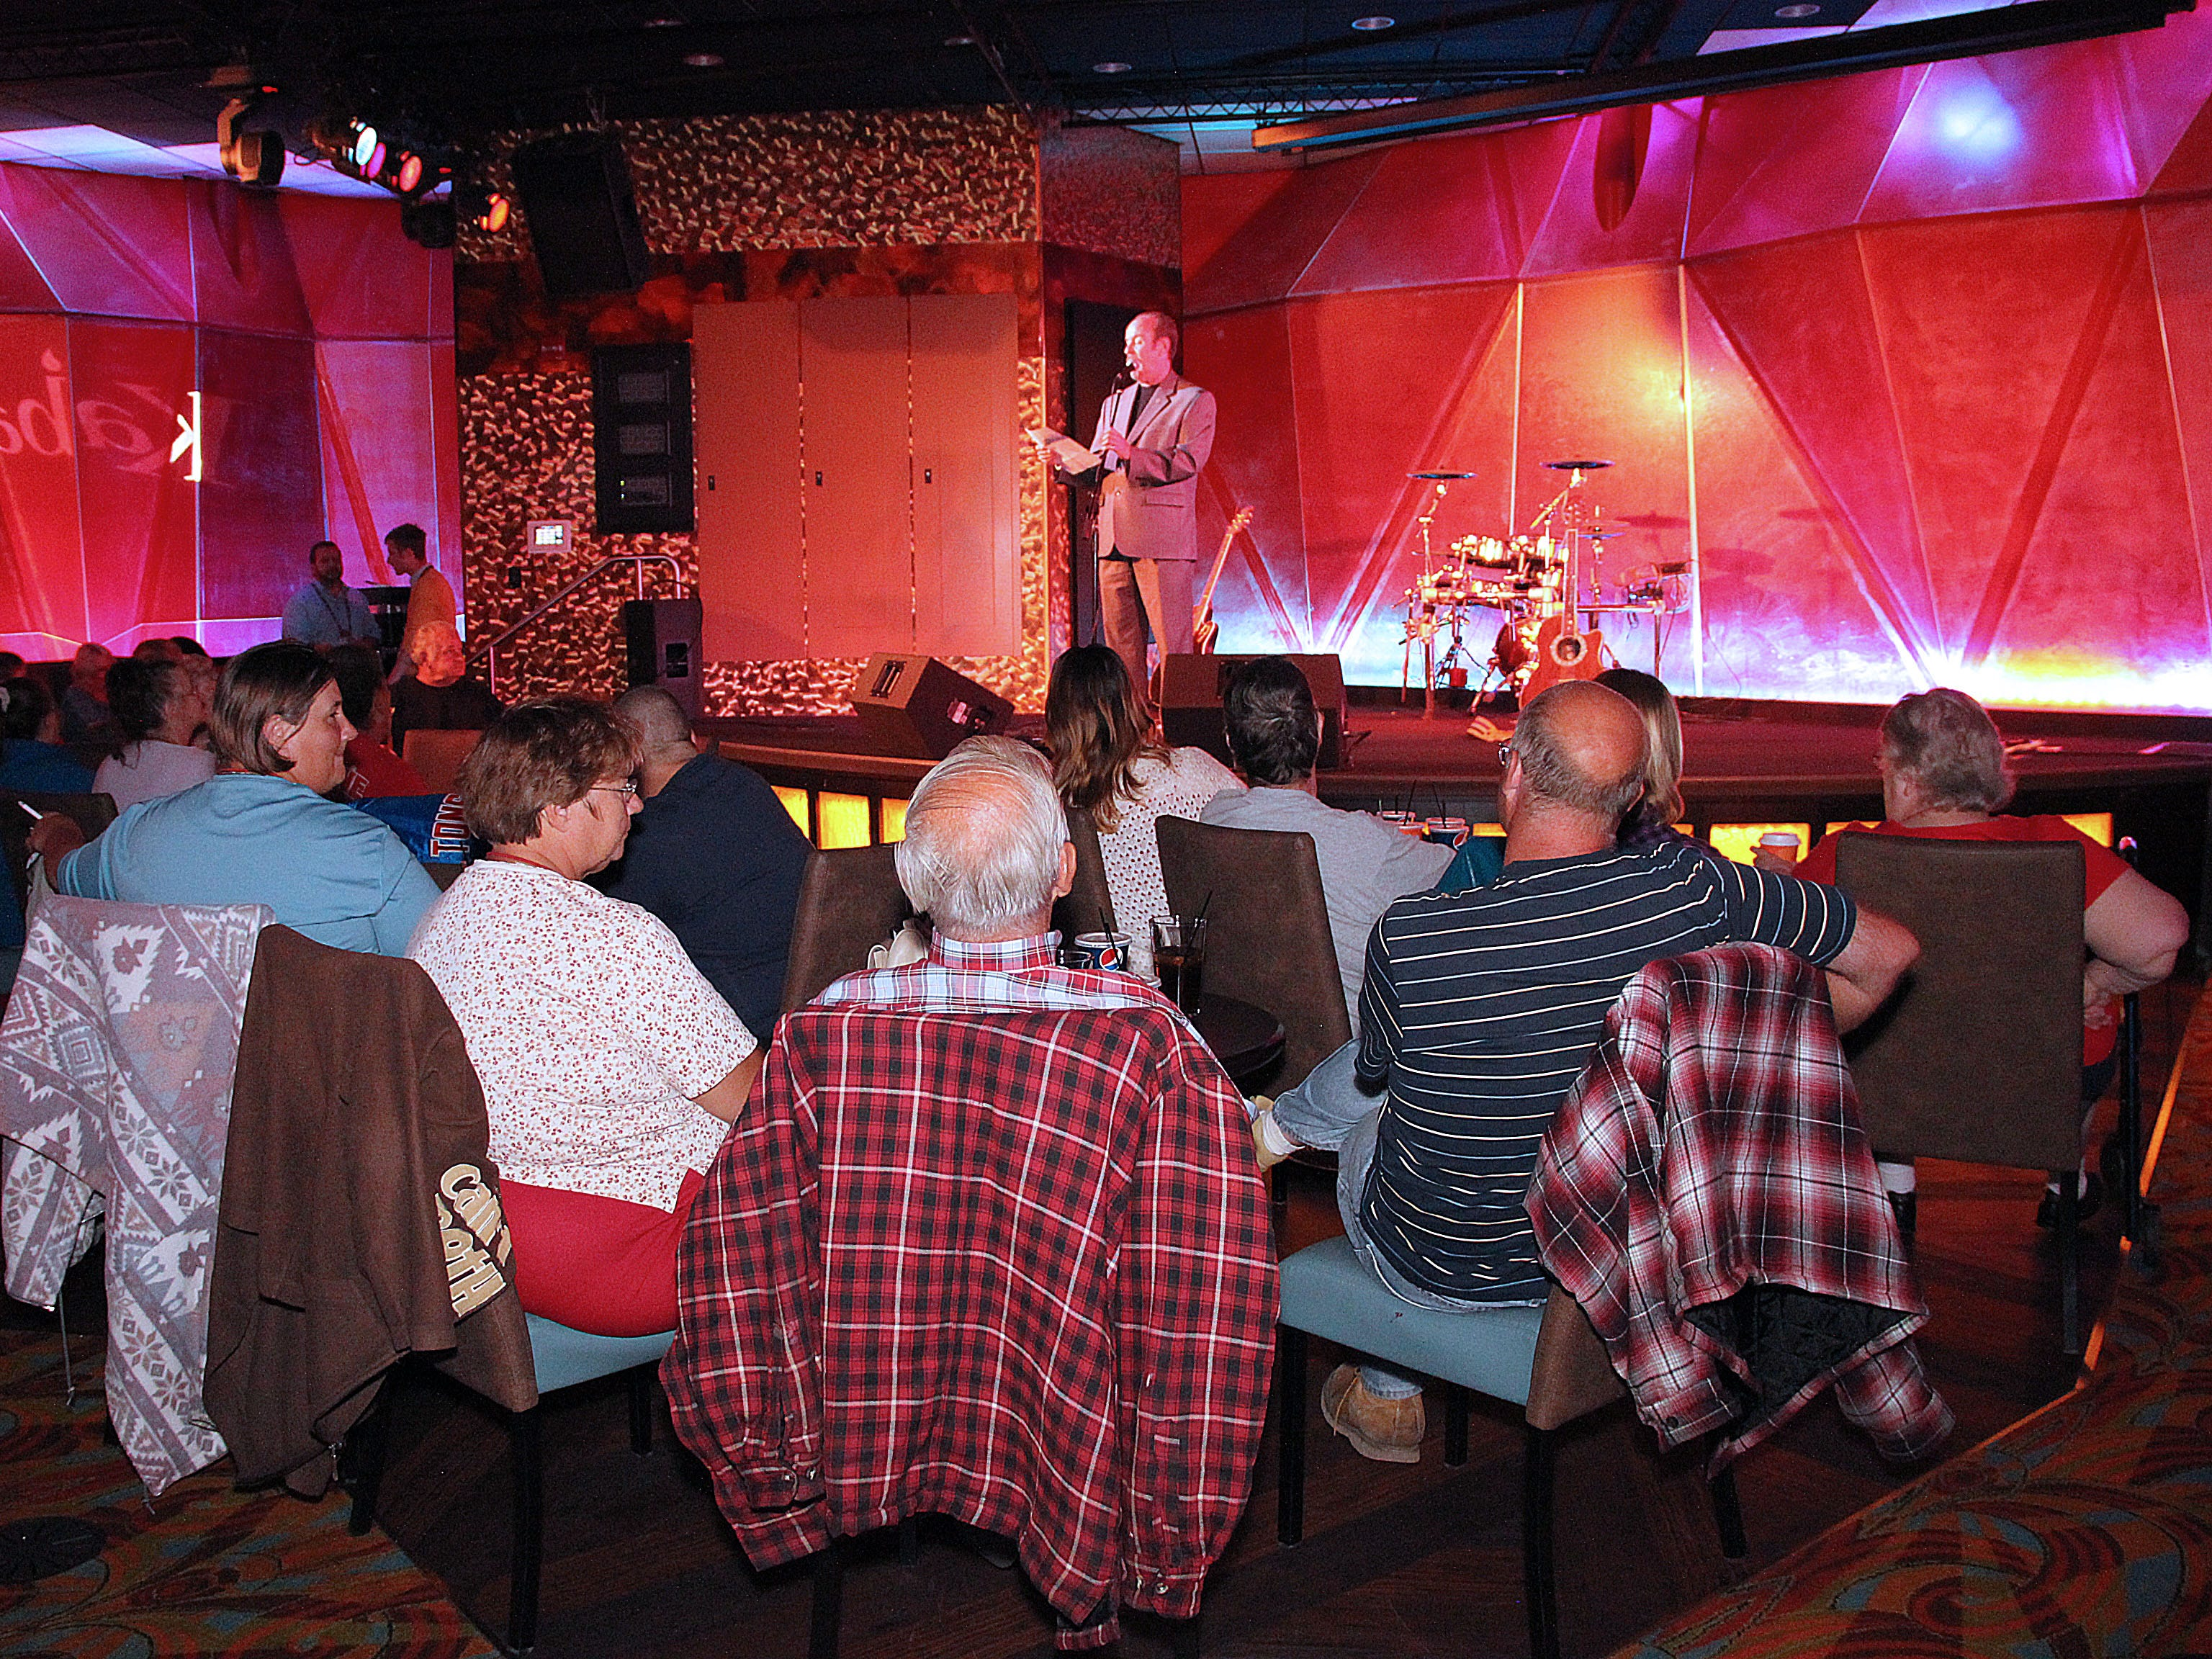 Gary Fields takes to the stage and warms up the audience before introducing The Human Juke Boxx at Kabaret of FireKeepers Casino in 2012.